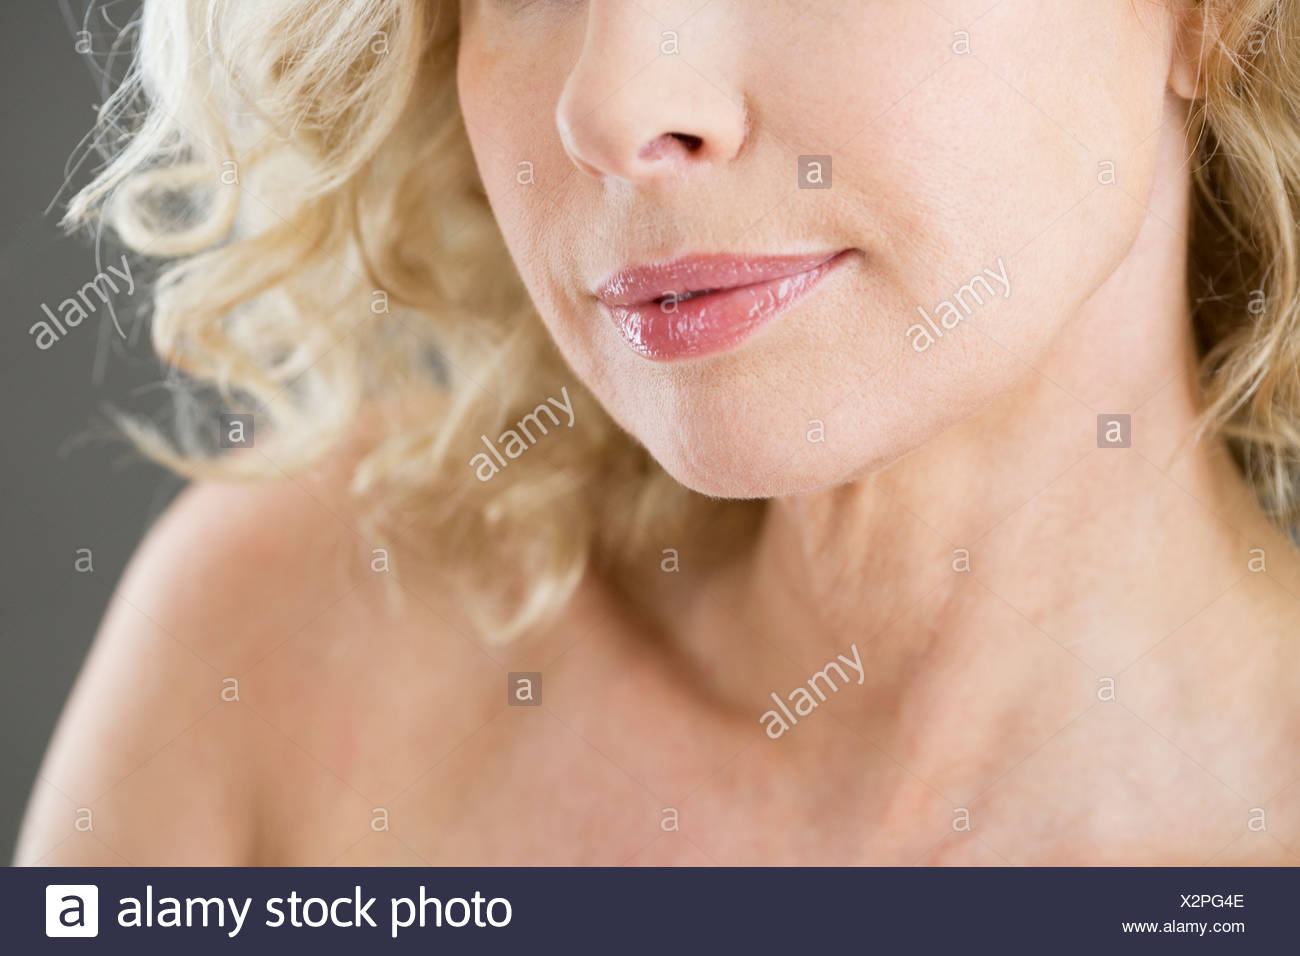 The lower face of a middle aged woman - Stock Image